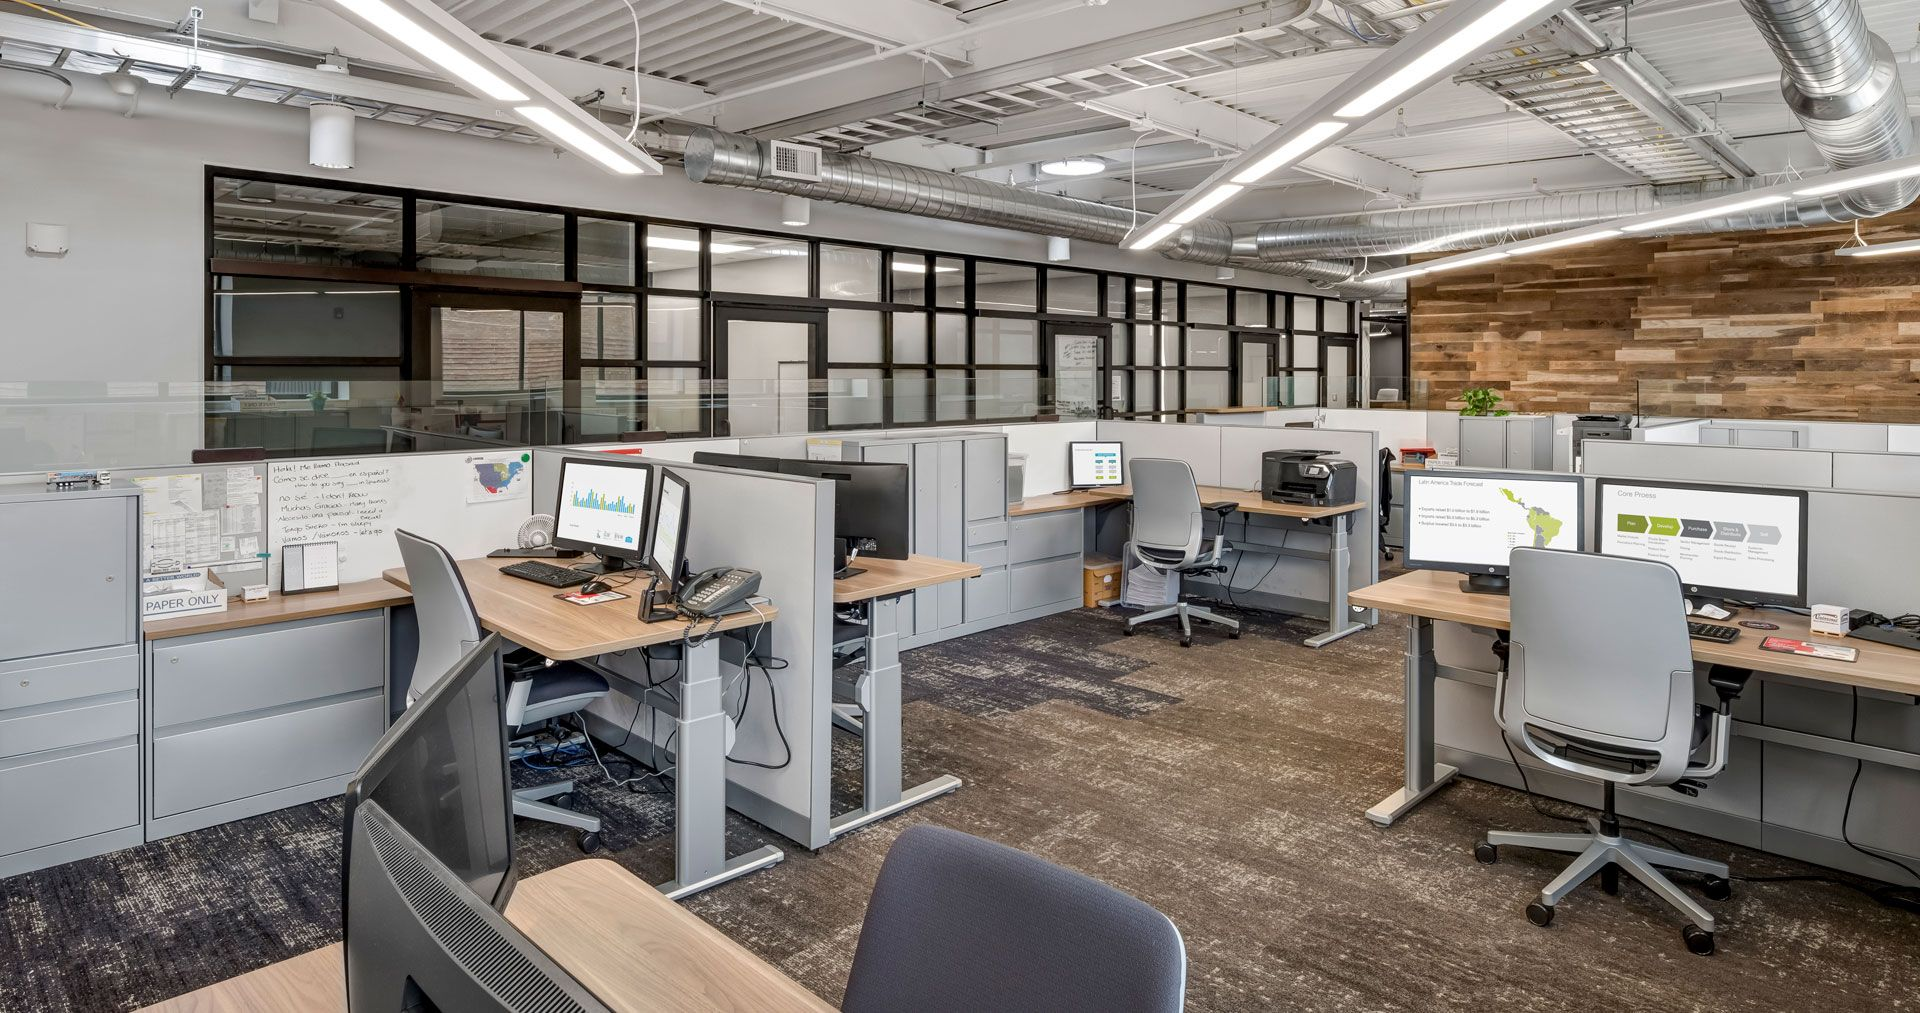 Height adjustable desks in the open work environment